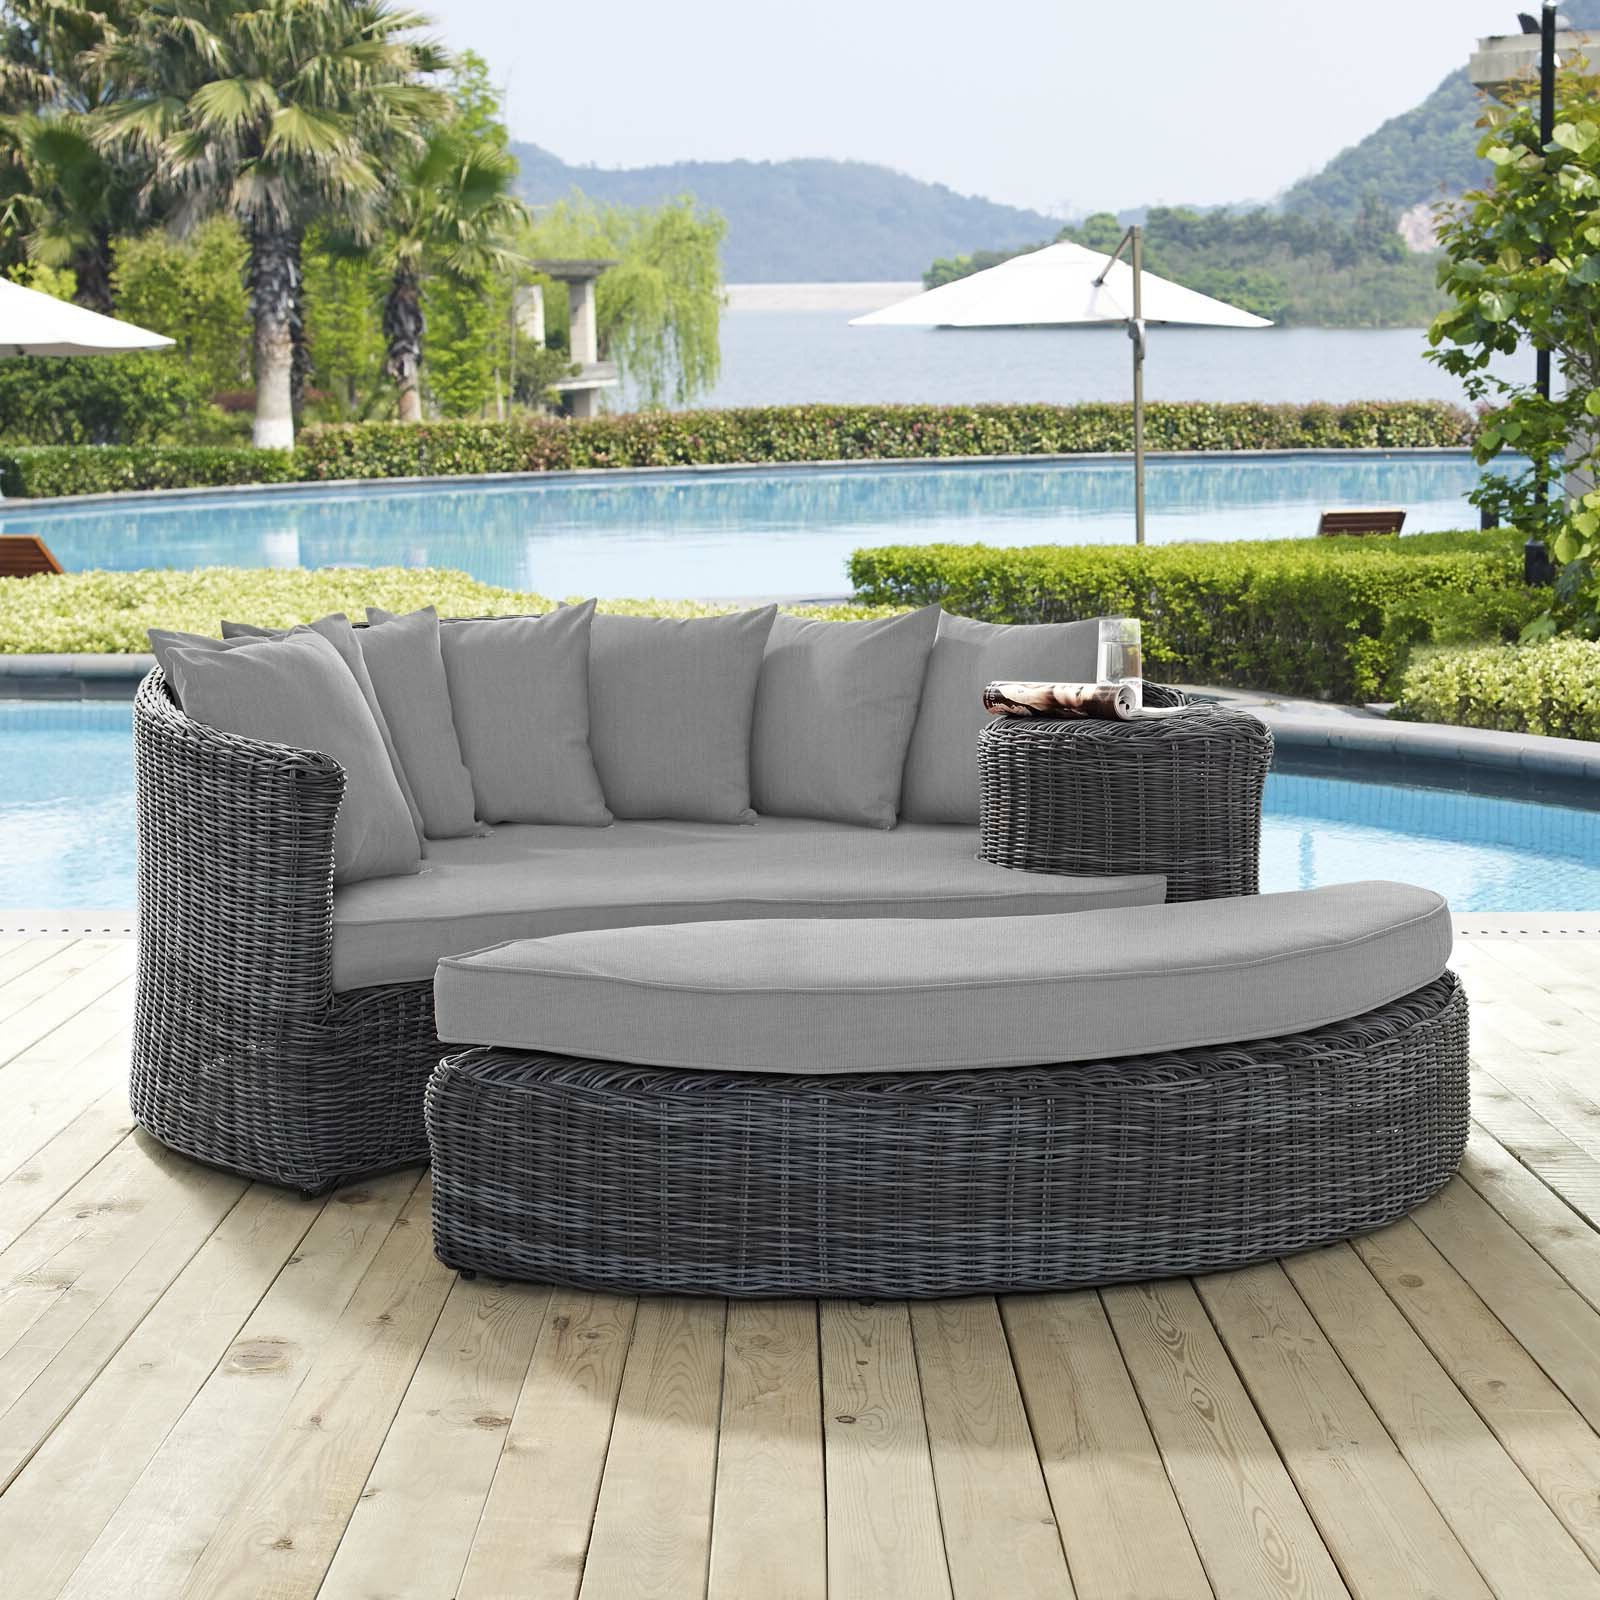 Hatley Patio Daybeds With Cushions With Regard To 2019 Keiran Patio Daybed With Cushions (View 9 of 20)